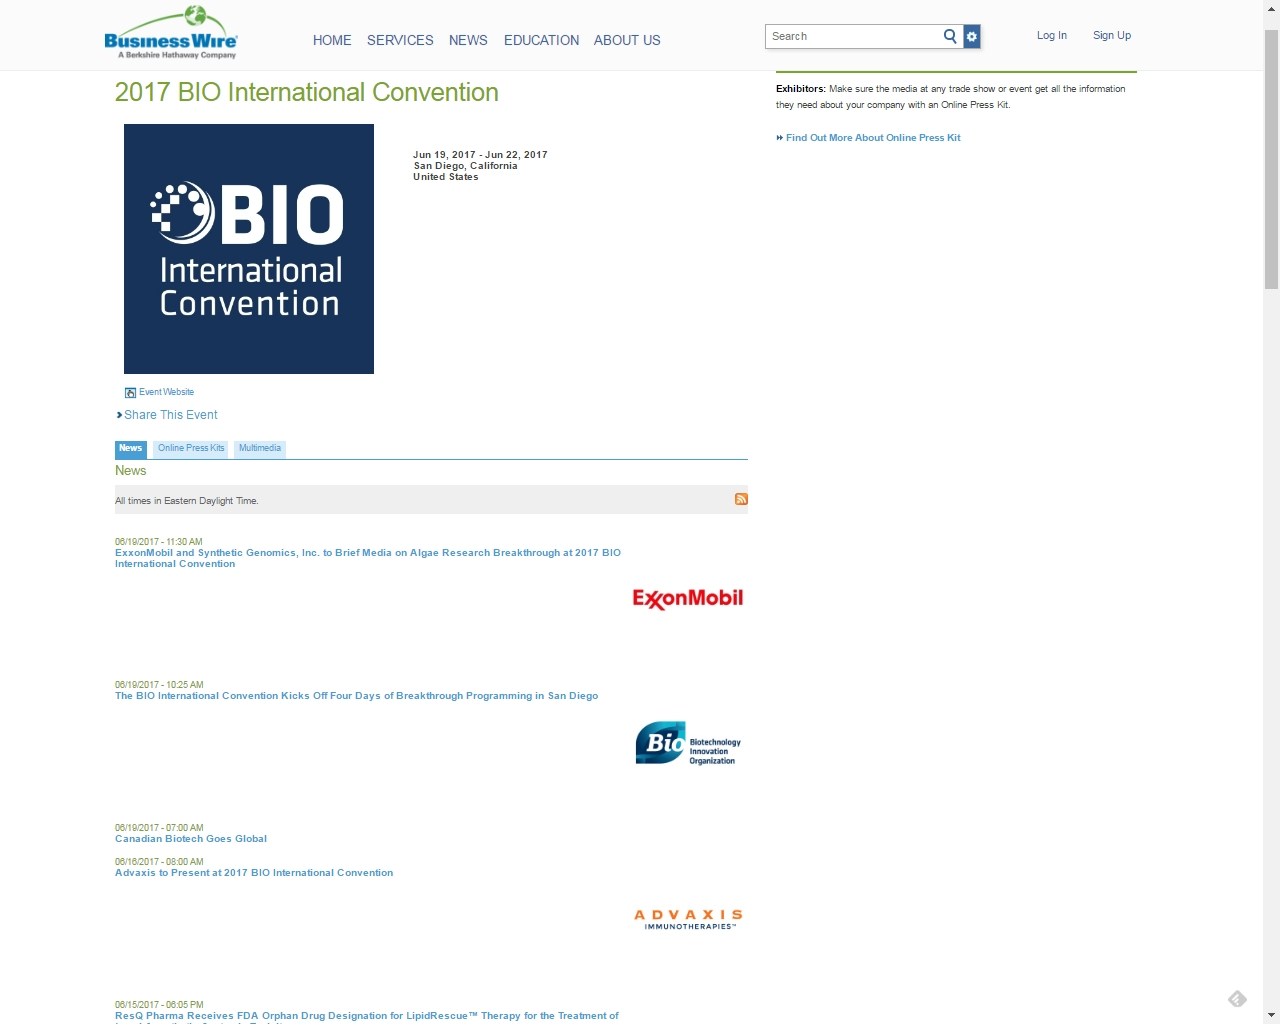 Business Wire will be making breaking 2017 BIO International Convention exhibitor news releases available at www.tradeshownews.com. (Graphic: Business Wire)